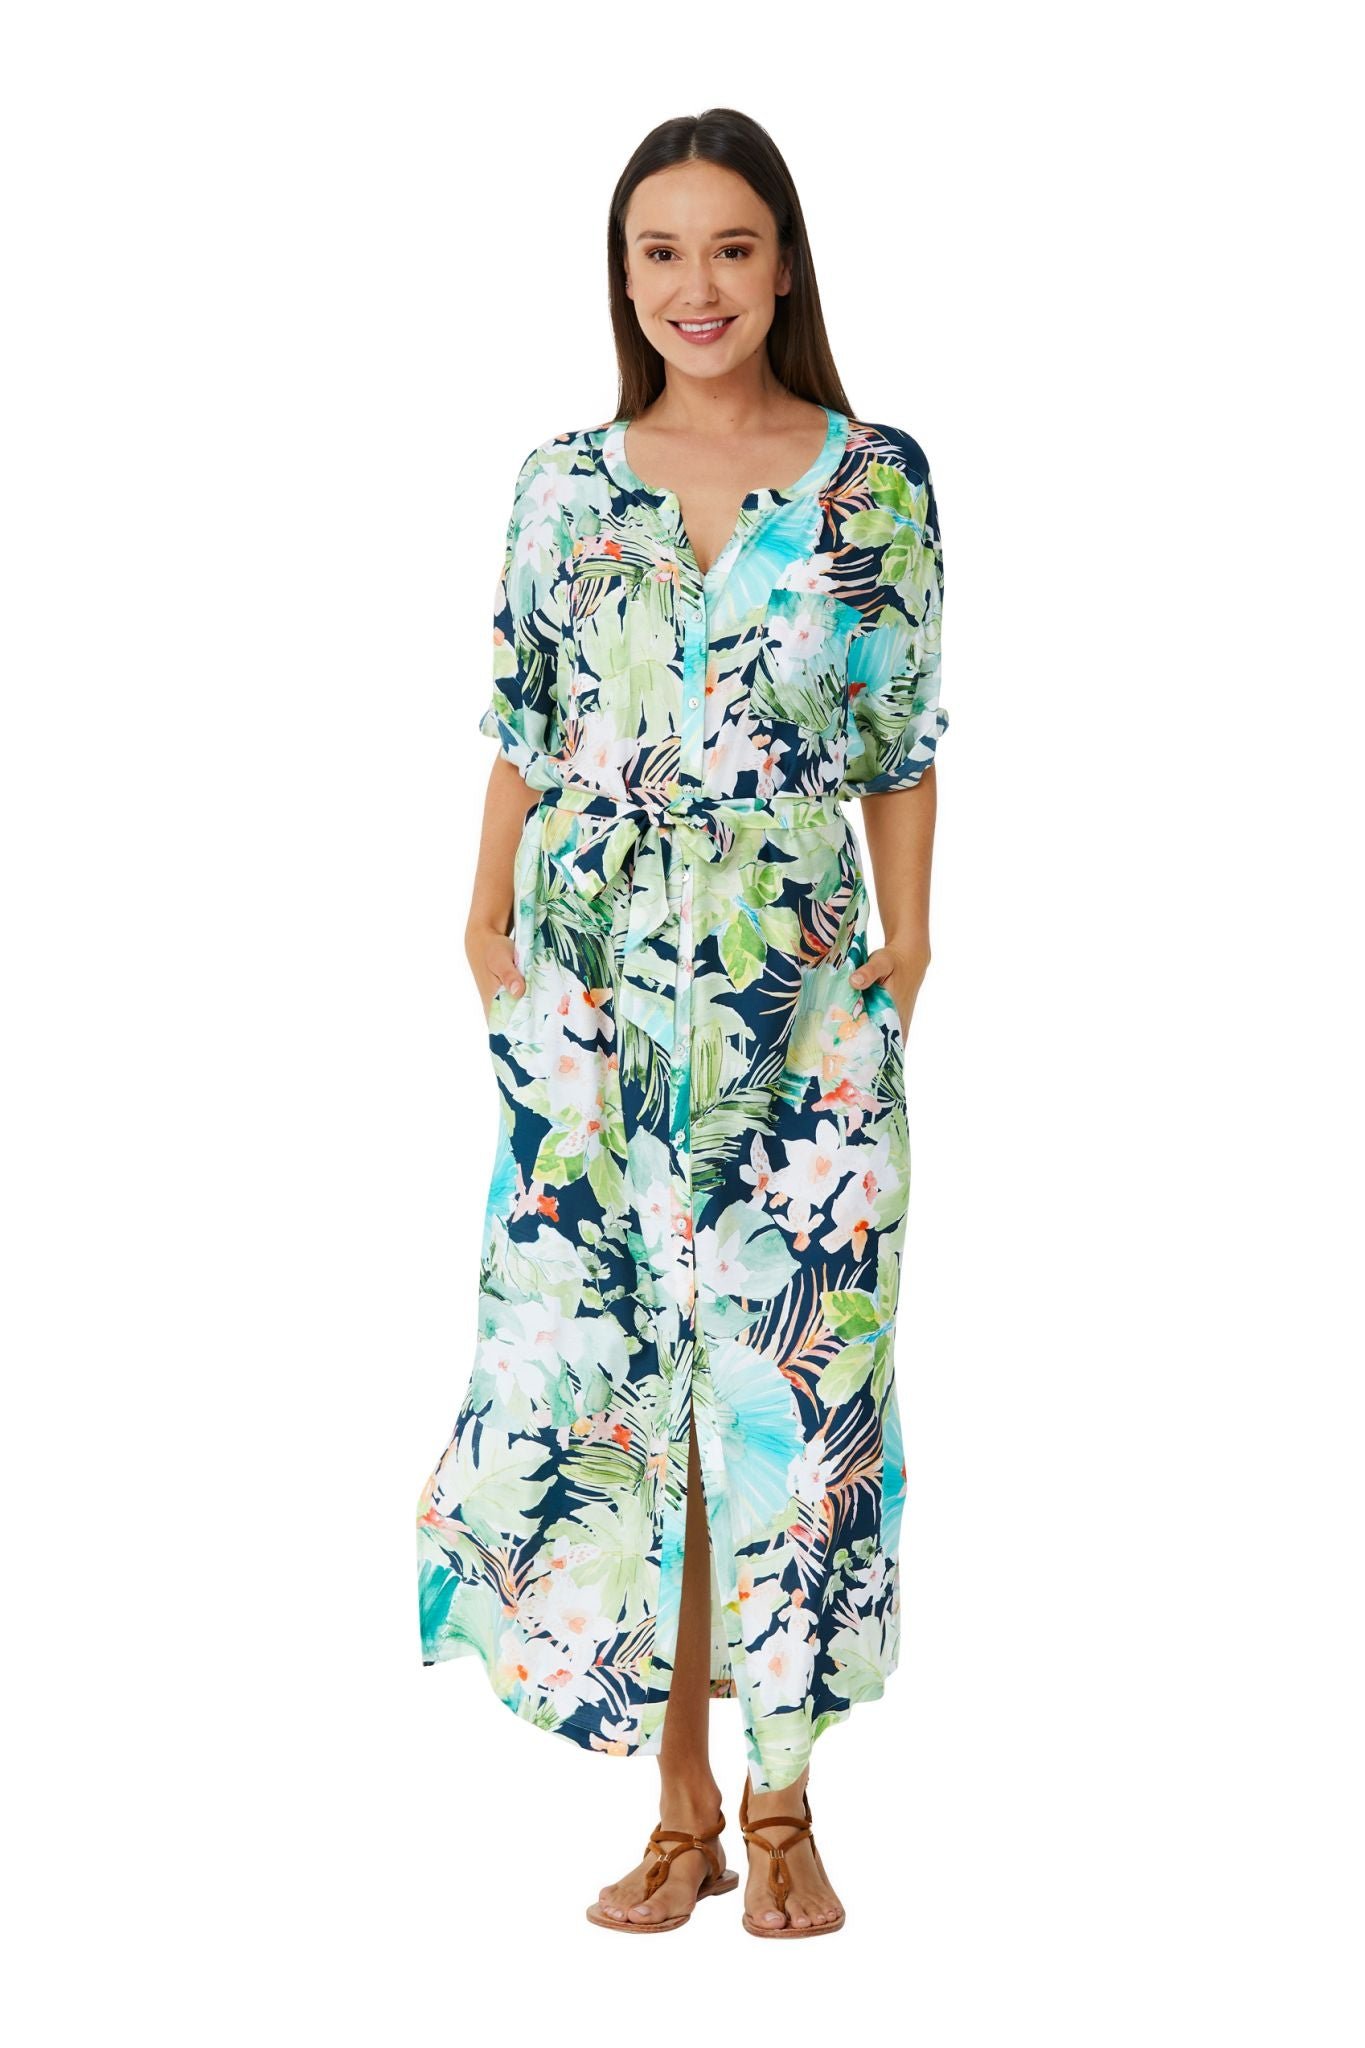 Monte & Lou Vacation Full Length Shirt Dress - Vacation